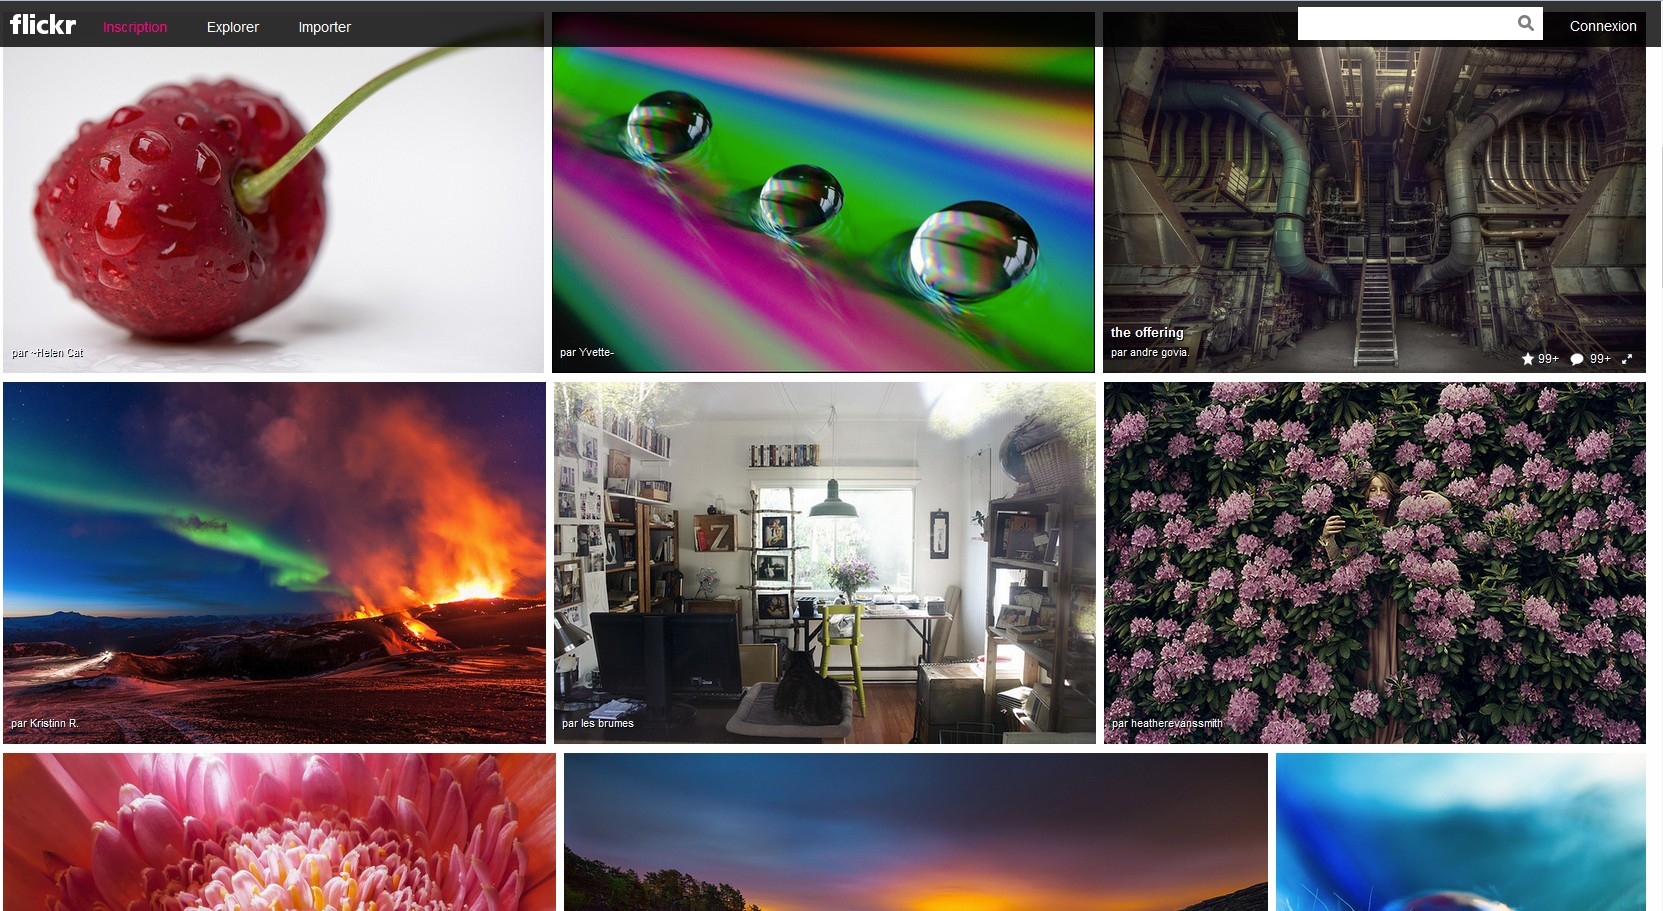 Flickr nouvelle interface